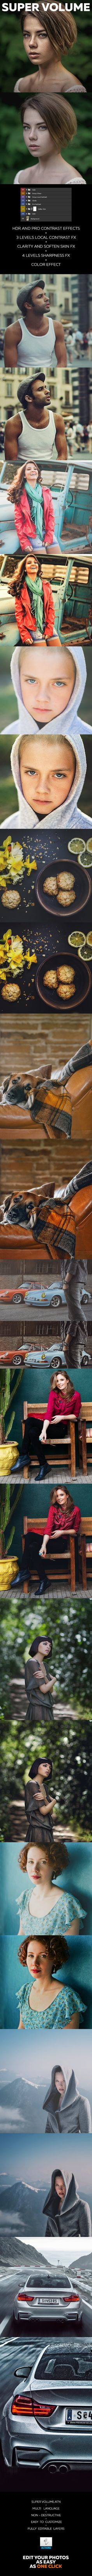 Super Volume - Photoshop Action #photoeffect Download: http://graphicriver.net/item/super-volume-photoshop-action/12642948?ref=ksioks